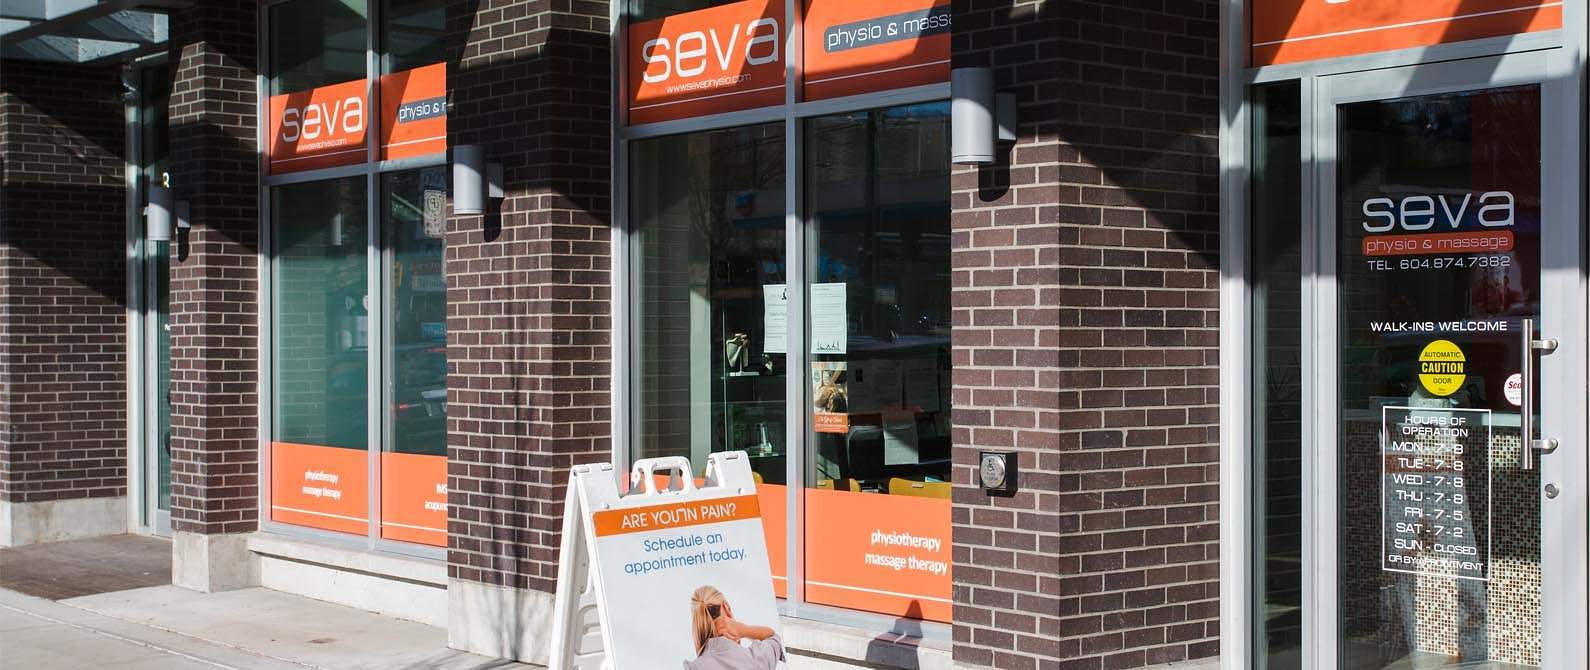 seva-physiotherapy-new-location-vancouver